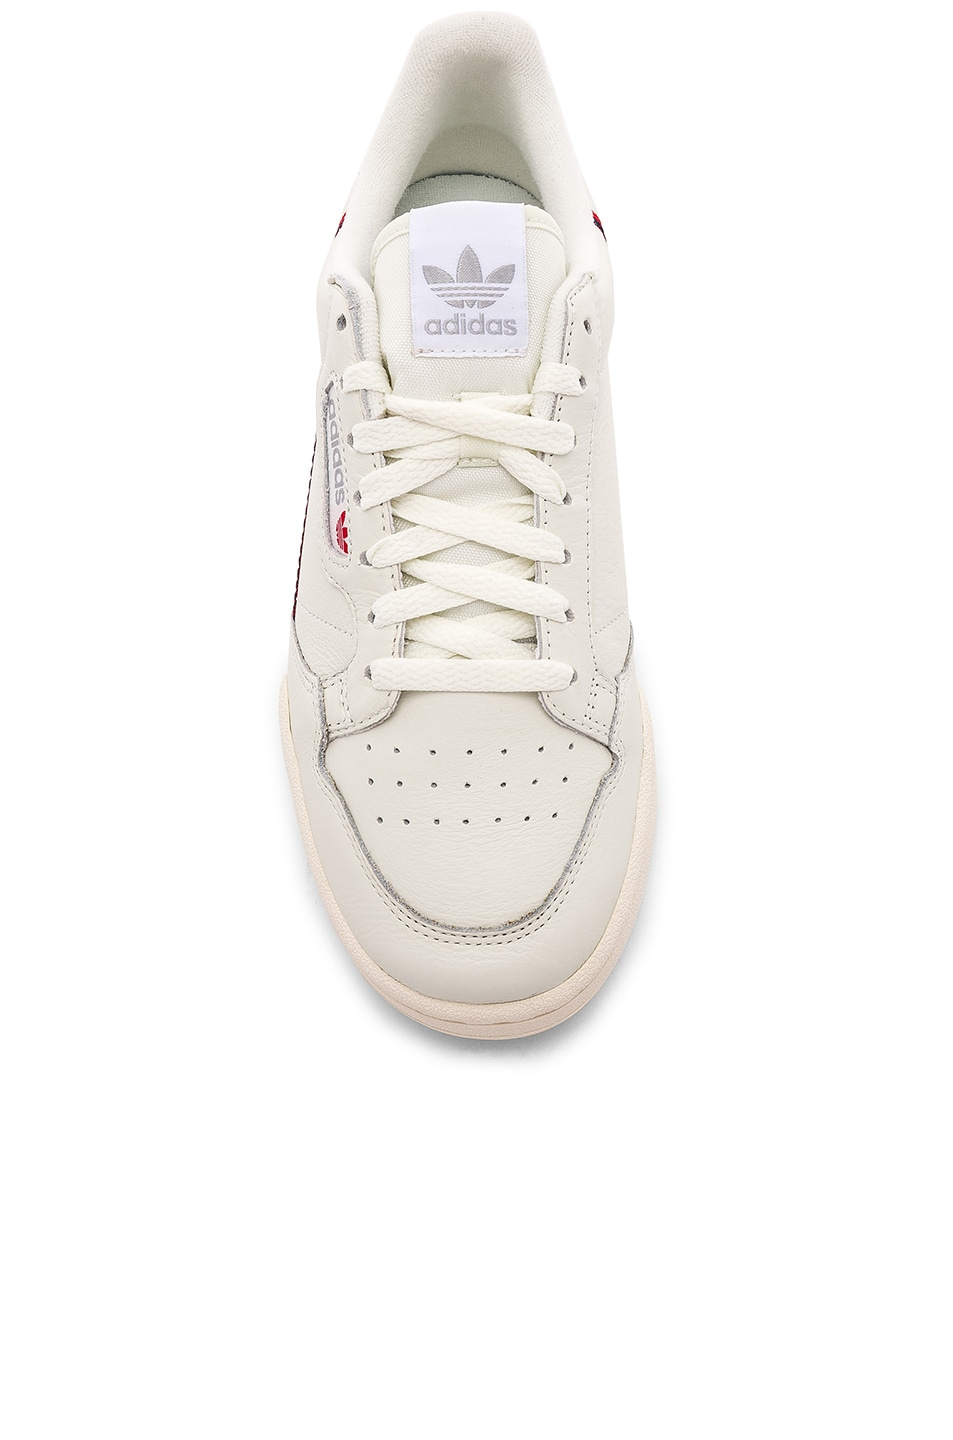 buy online 2294a 9afd9 Image 4 of adidas Originals Rascal in White Tint  Off White  Scarlet